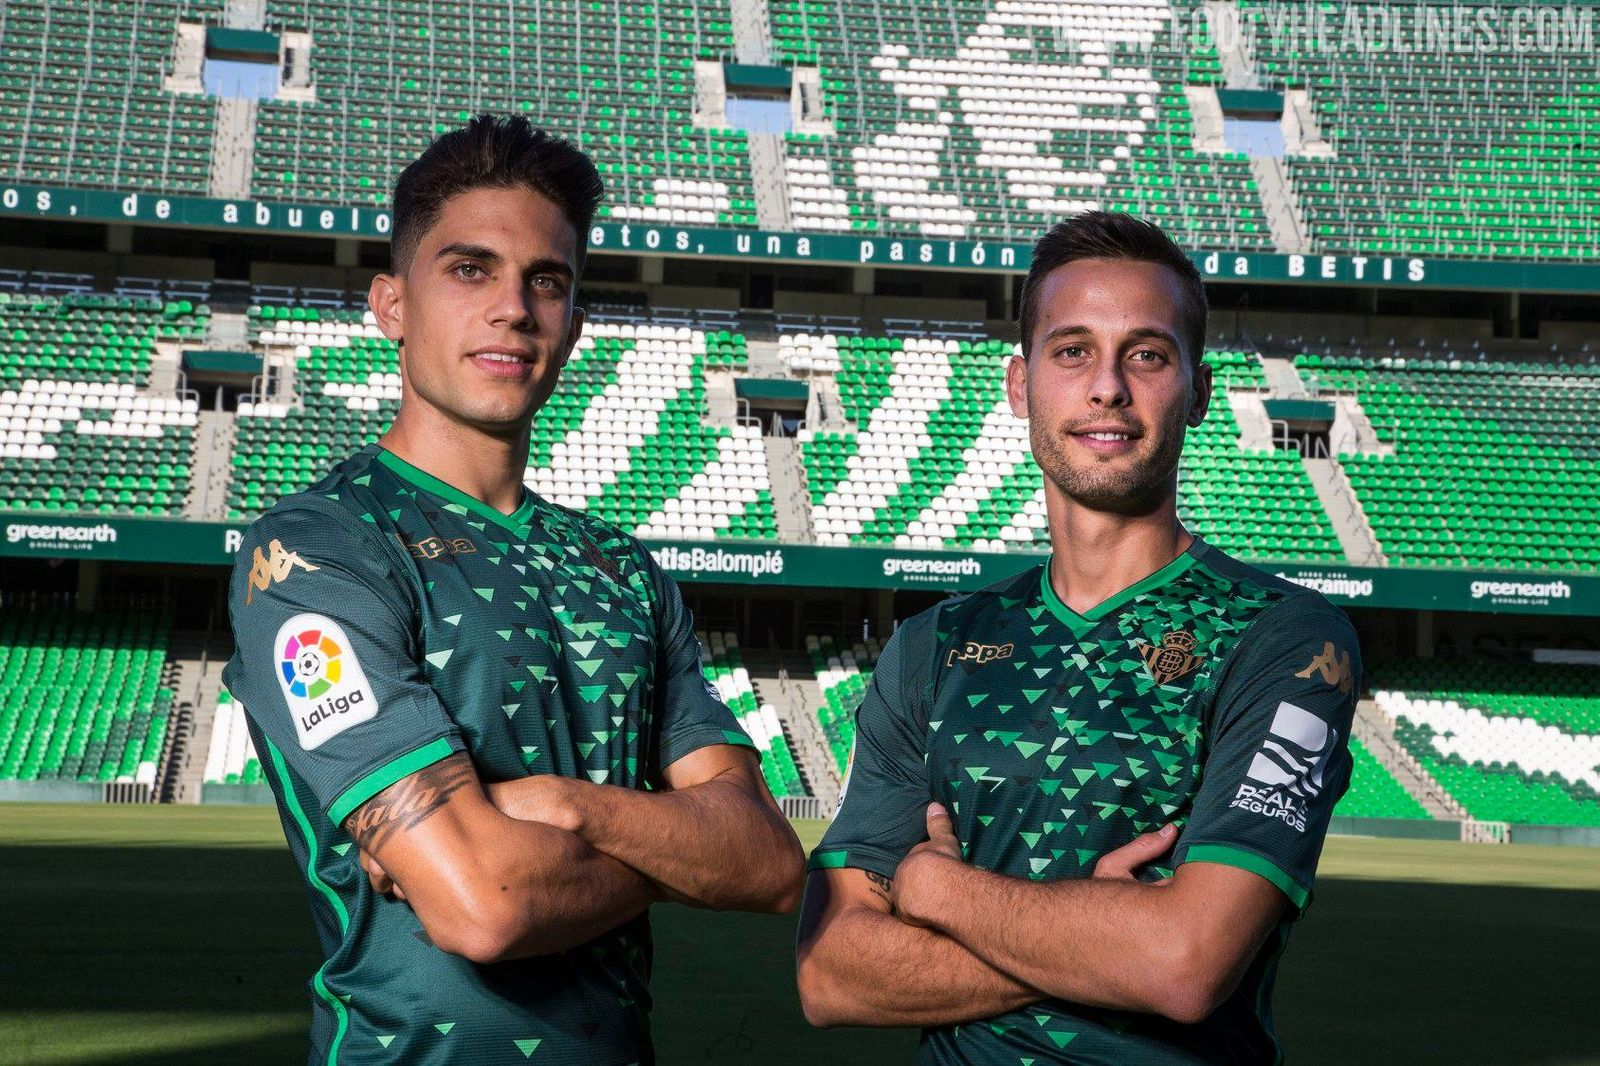 betis-18-19-away-kit-1.jpg